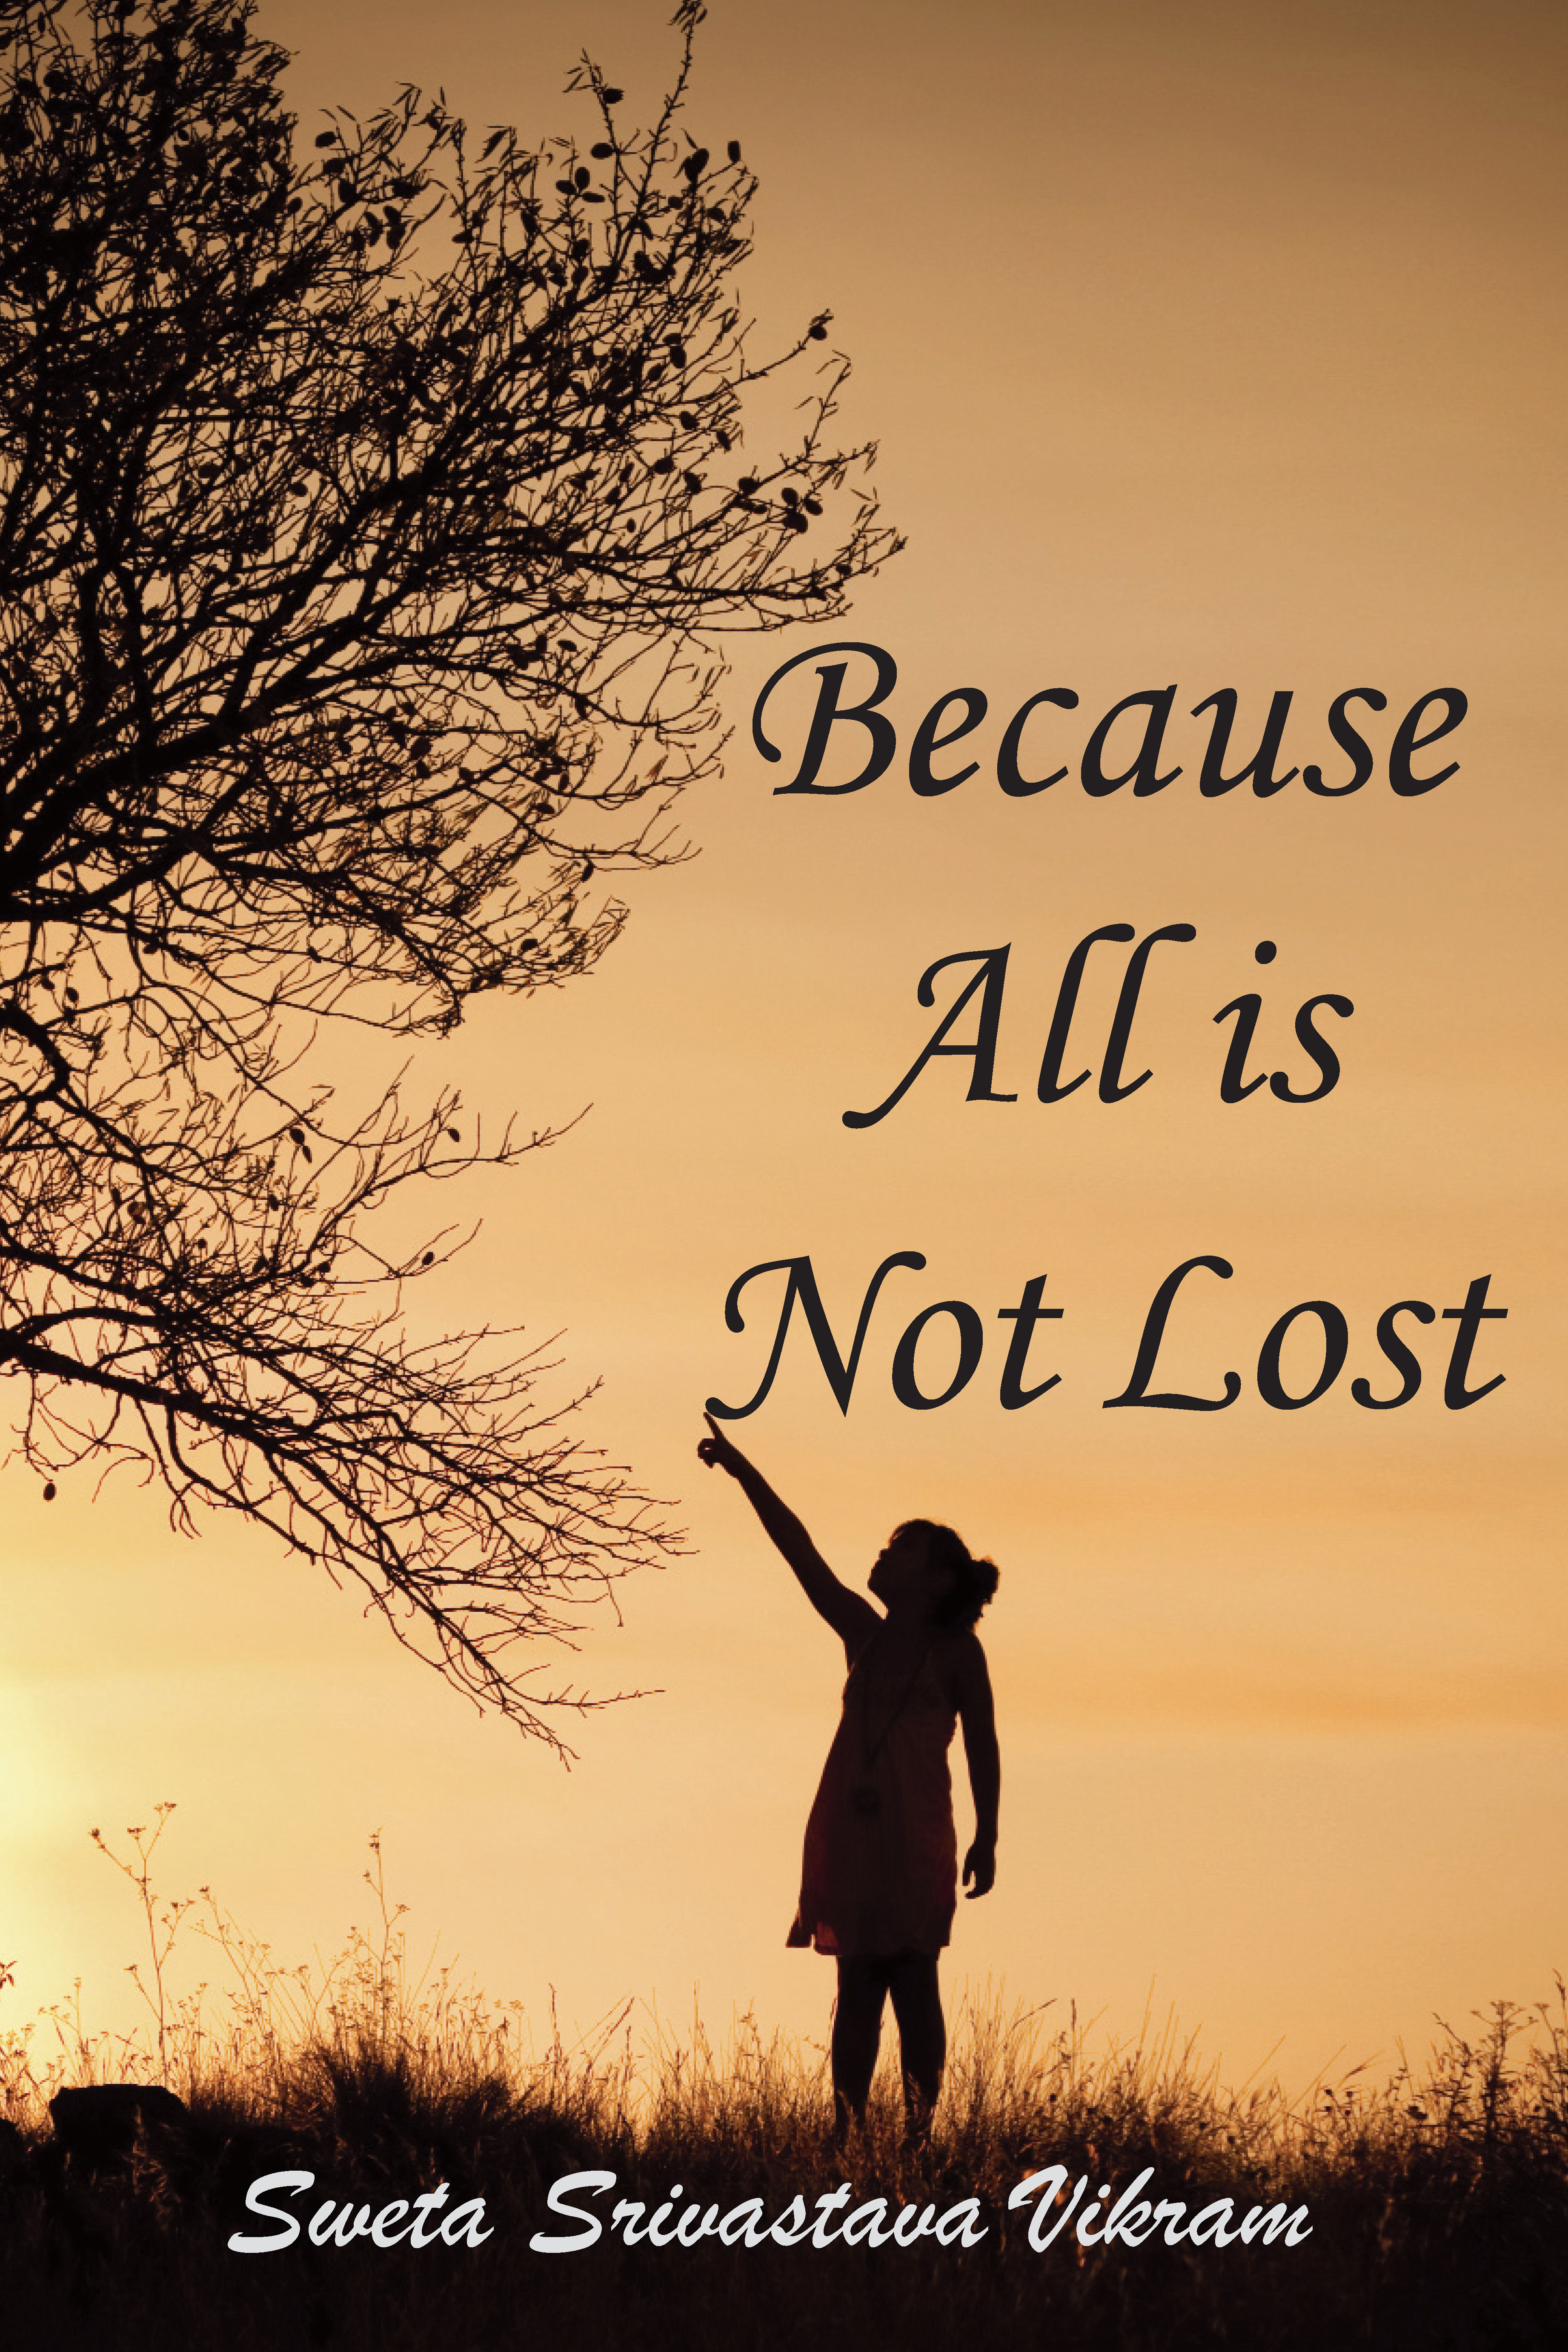 Because All is not Lost